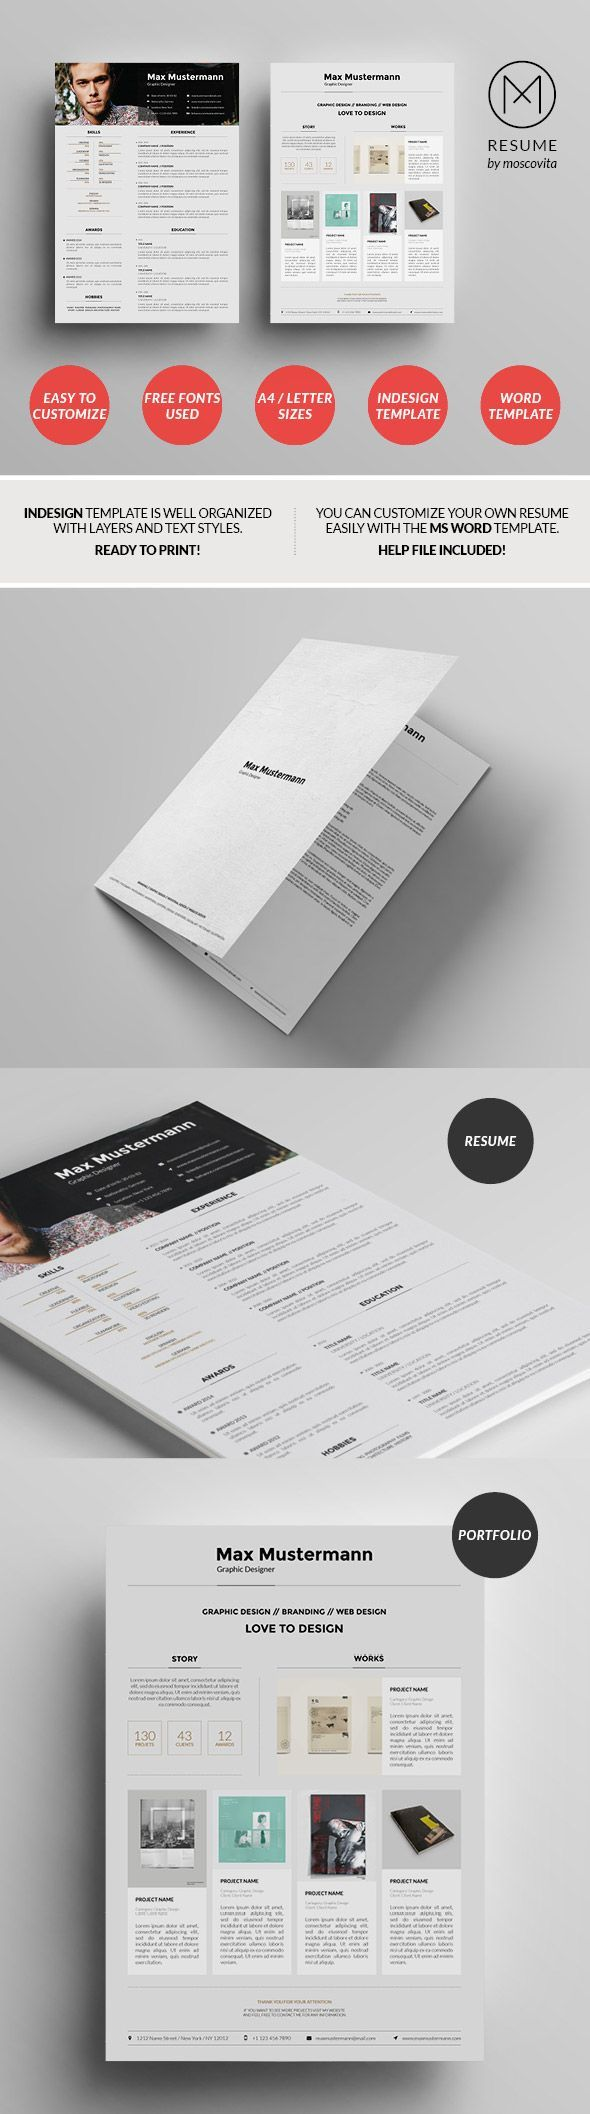 Structured Creative Resume Template Design 7 best